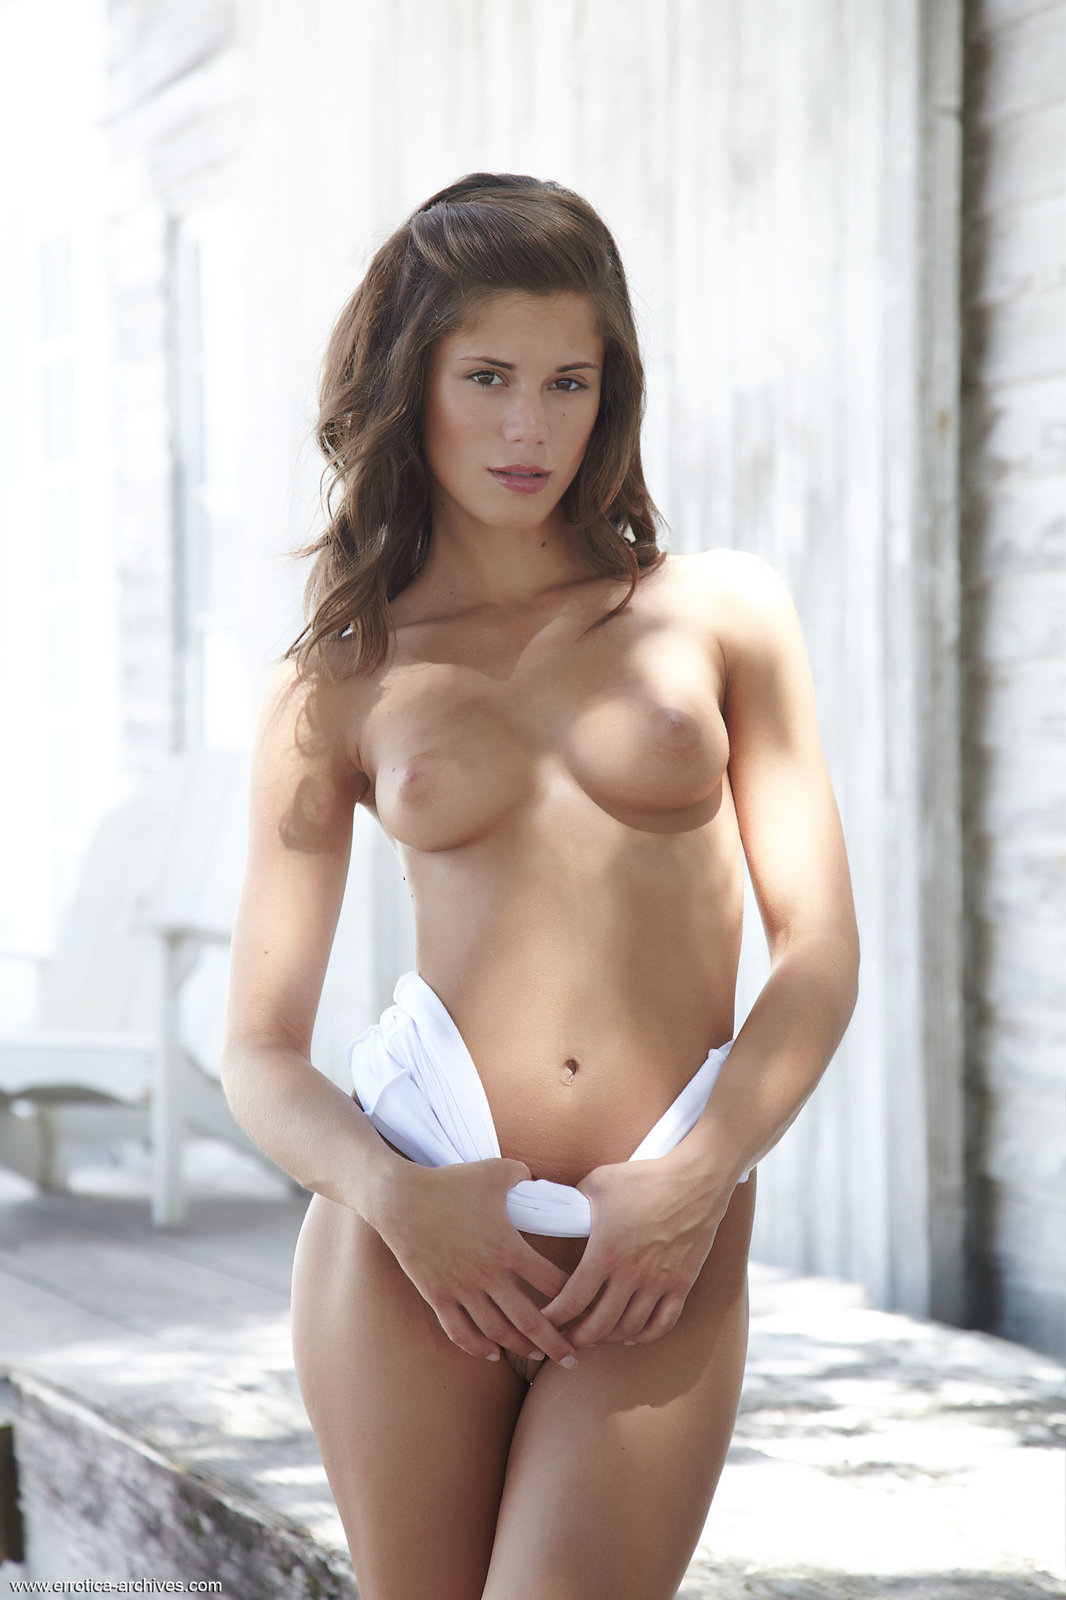 Caprice in Innocent by Errotica Archives 16 photos